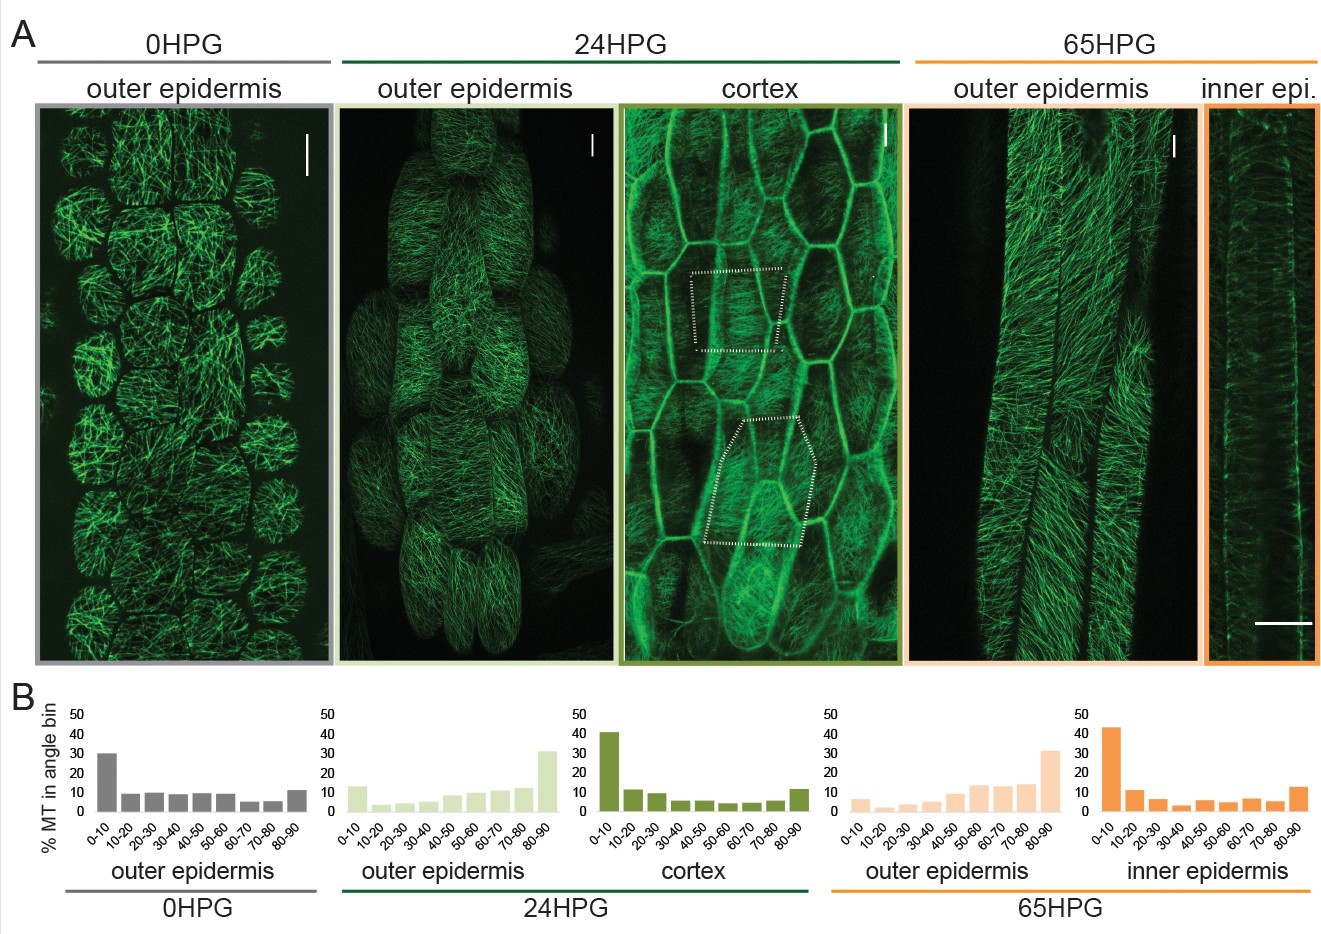 Anisotropic growth is achieved through the additive